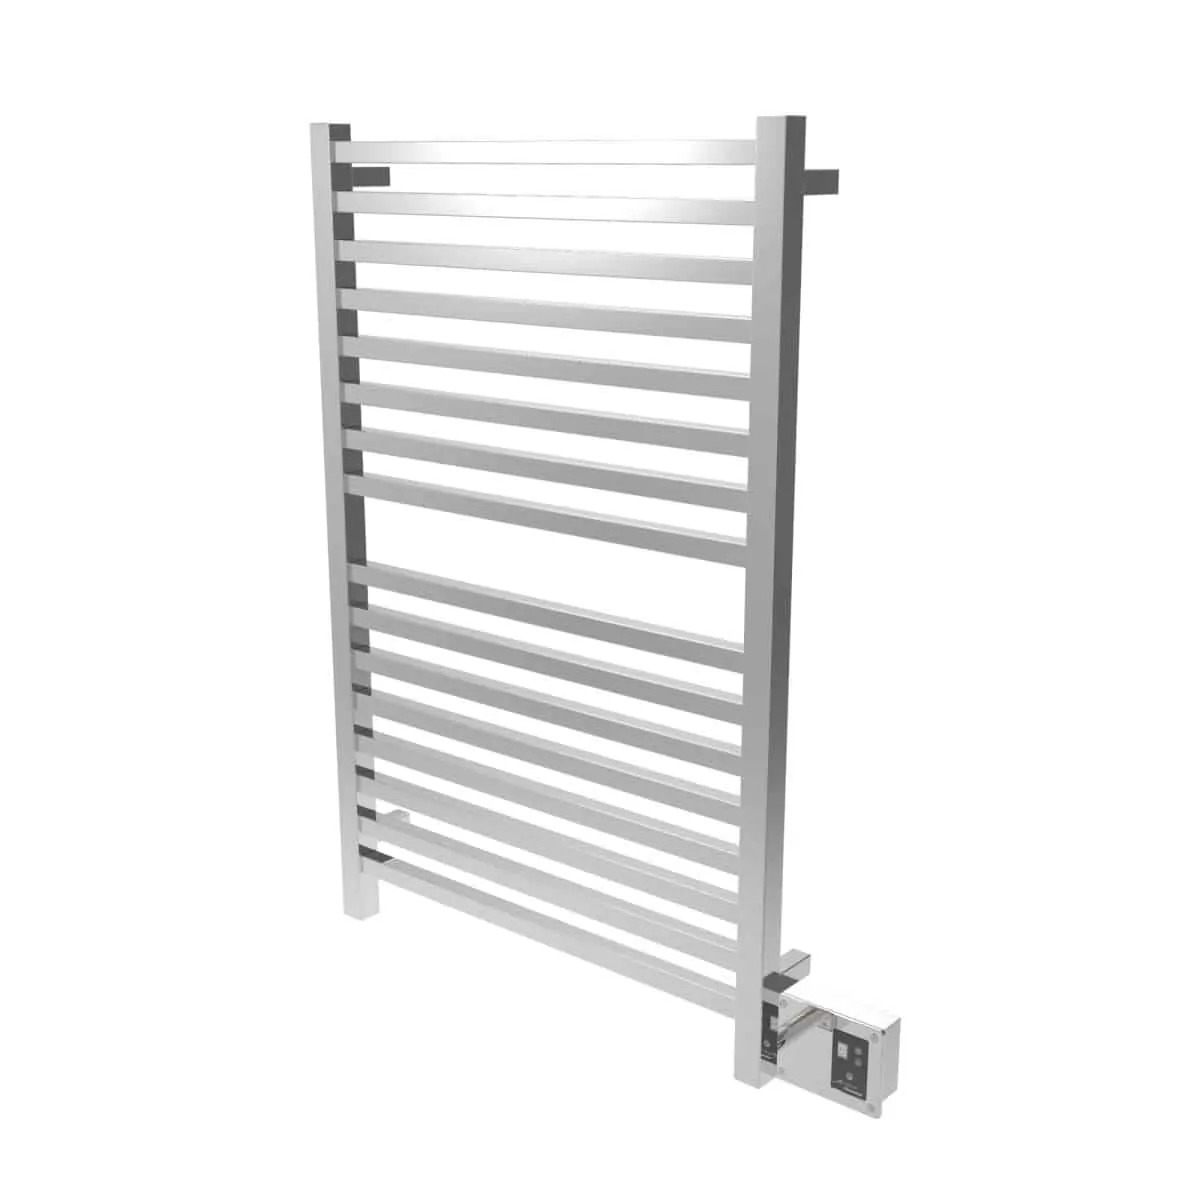 Amba Q2842P Quadro Heated Towel Rack - Polished